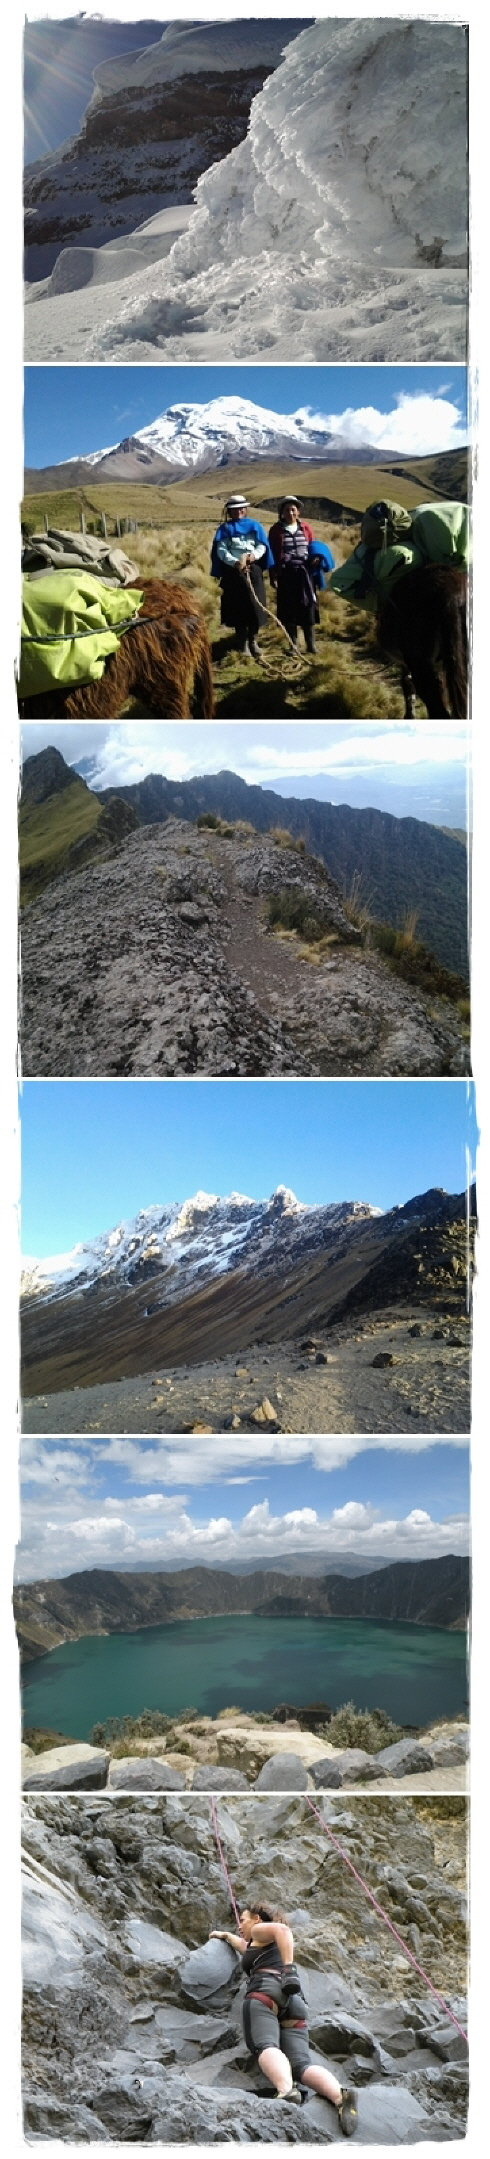 steadily up, from Quito to Chimborazo (6.263 m / 20.549 ft)